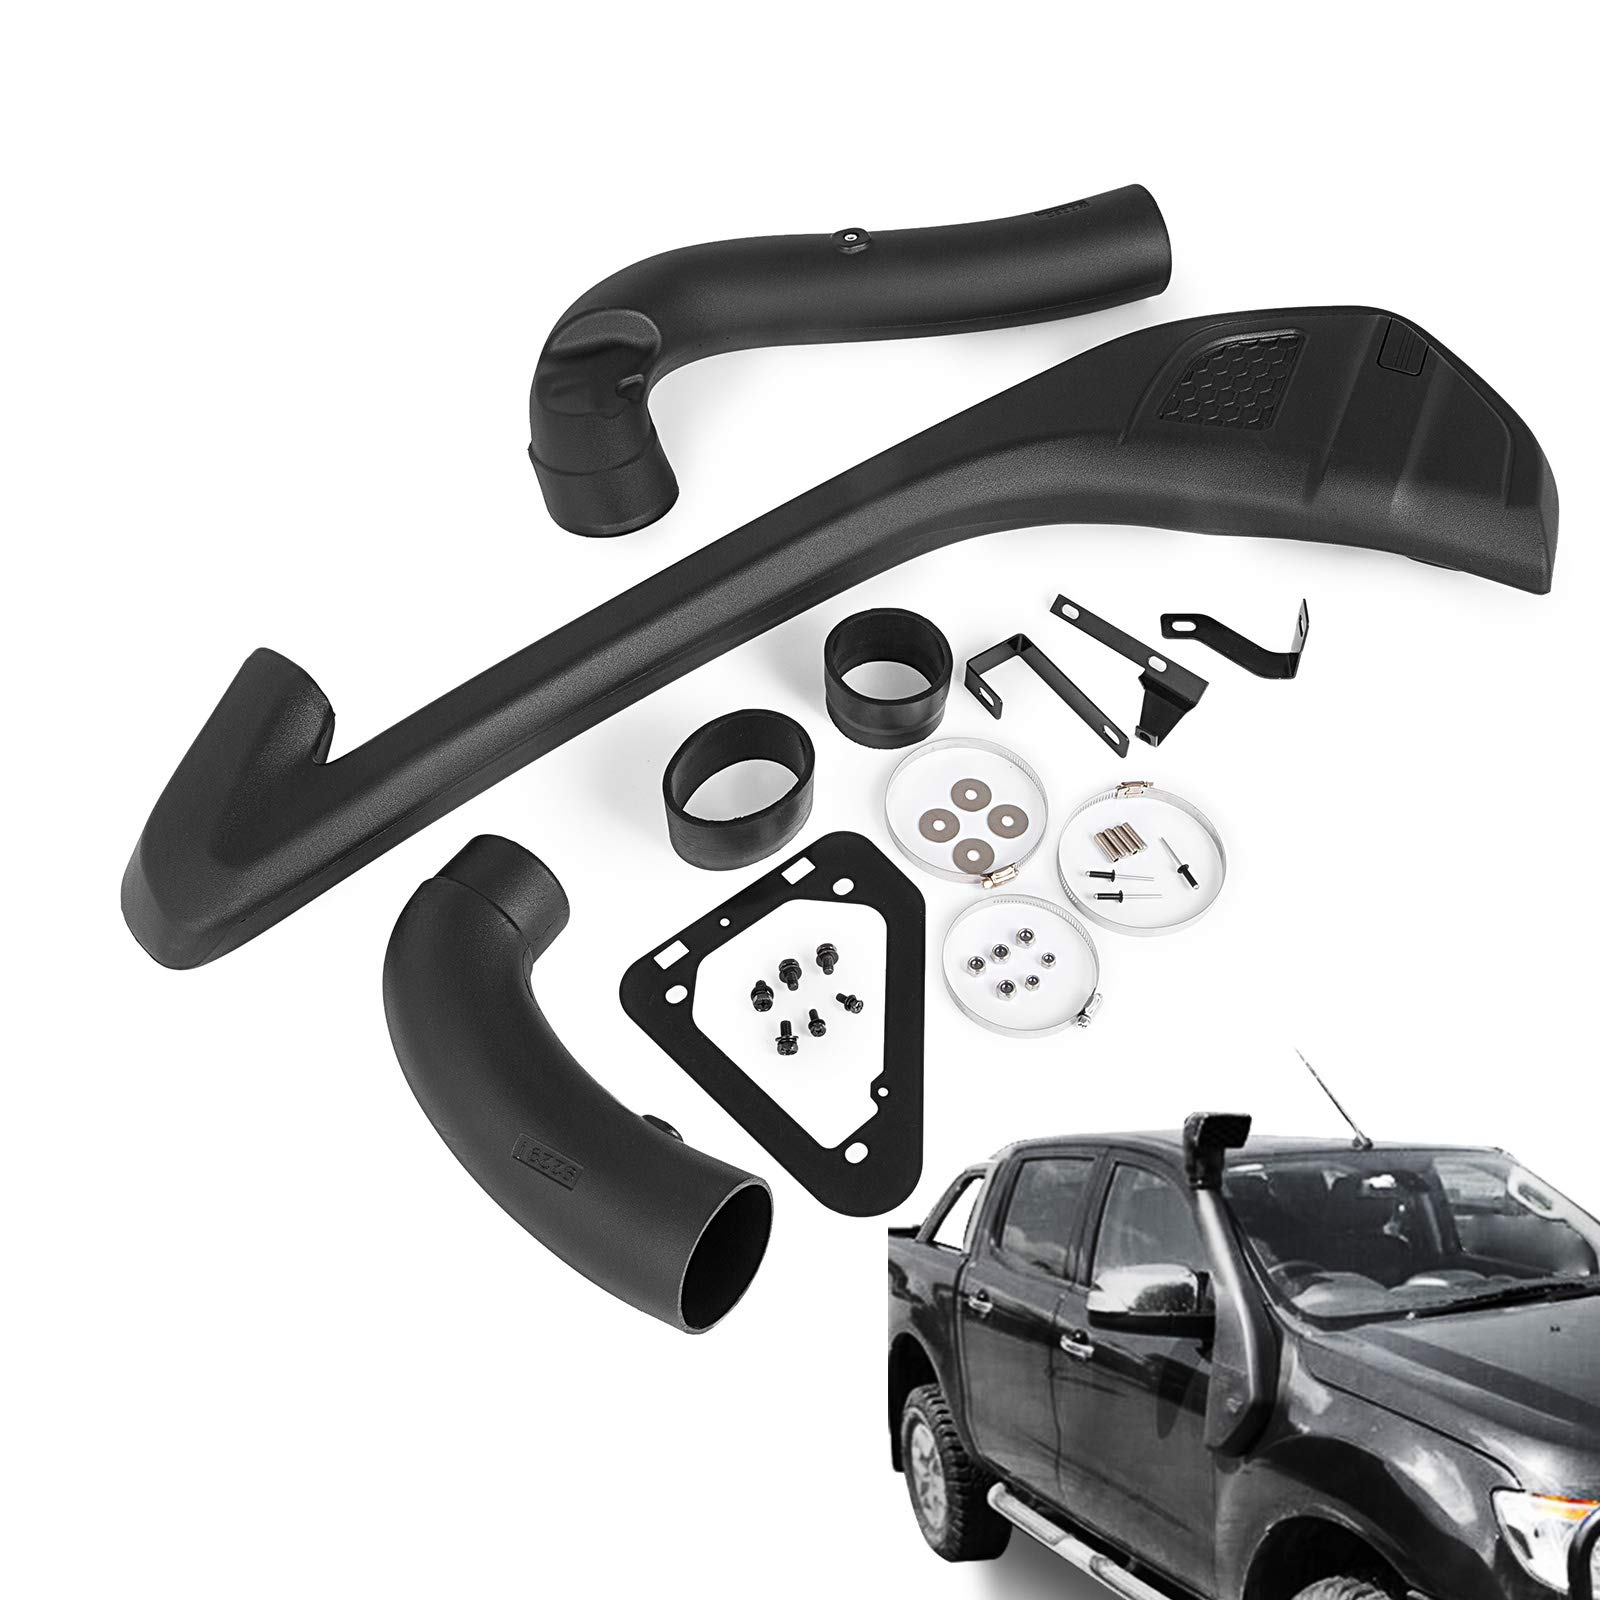 Mophron Air Intake Snorkel Kit Set ABS Plastic Snorkel Kit For 2011-2018 Ford Ranger T6 Xlt Xl 2Wd 4Wd Wildtrak by Mophorn